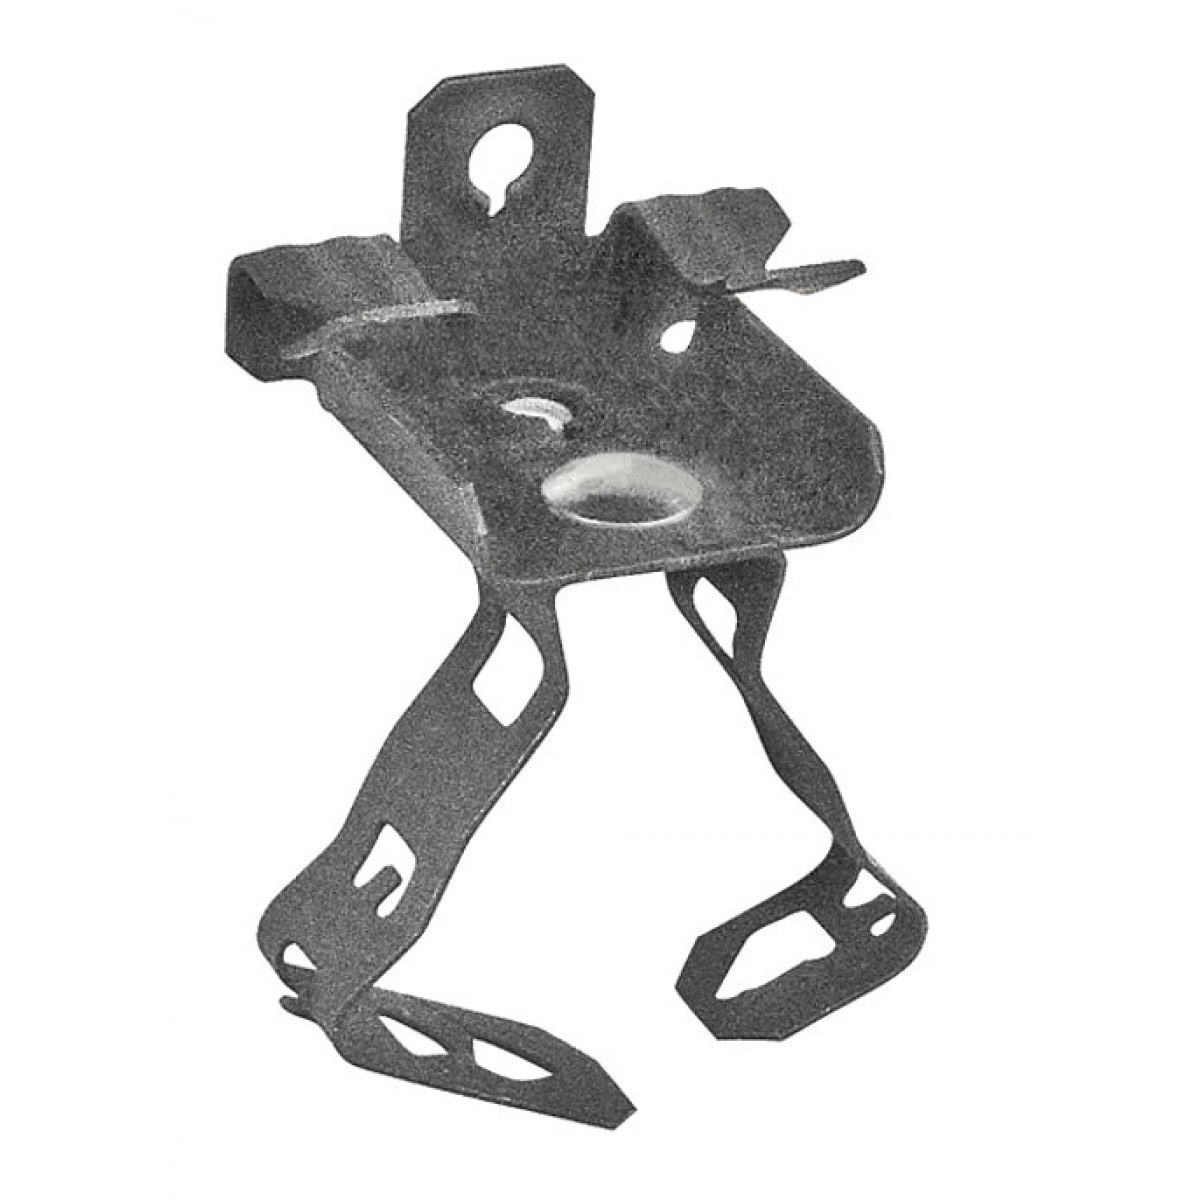 10 Pcs, 1-1/2 in. Conduit Hanger with 1/8 in. to 1/4 in. Thick Flange Mount, Spring Steel